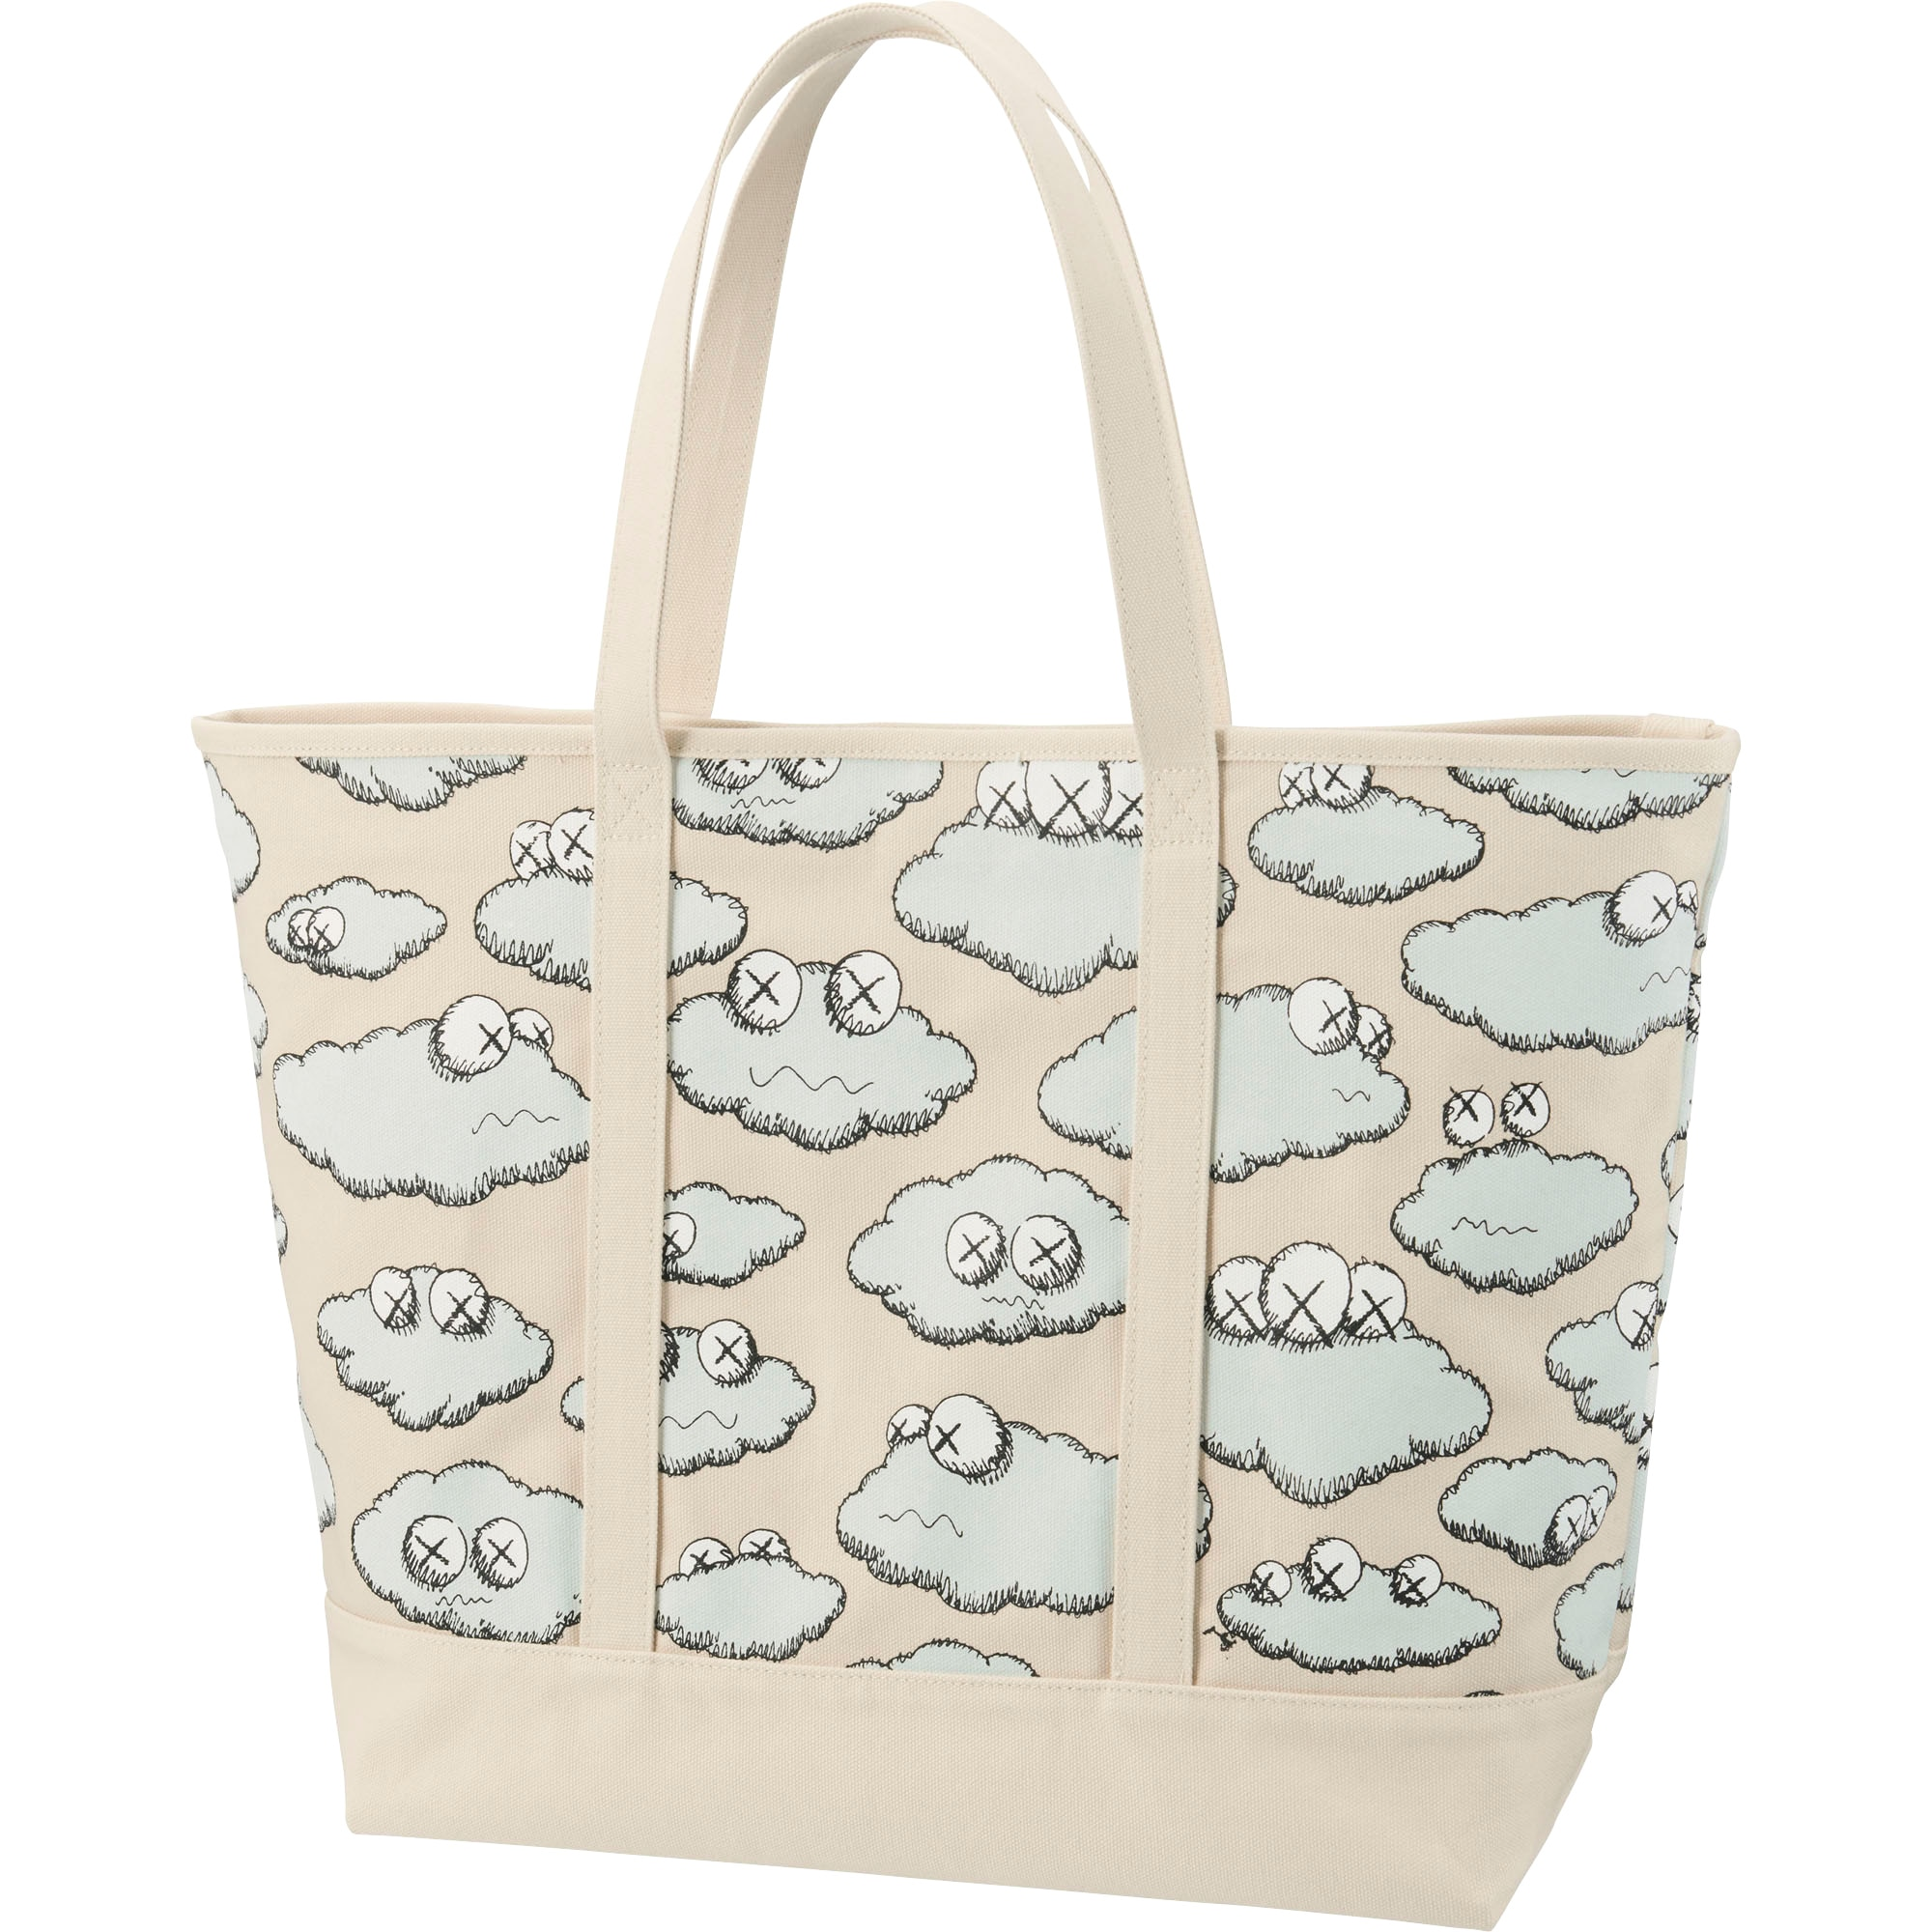 548fdcd37f6 Images. KAWS LARGE SIZE TOTE BAG ...